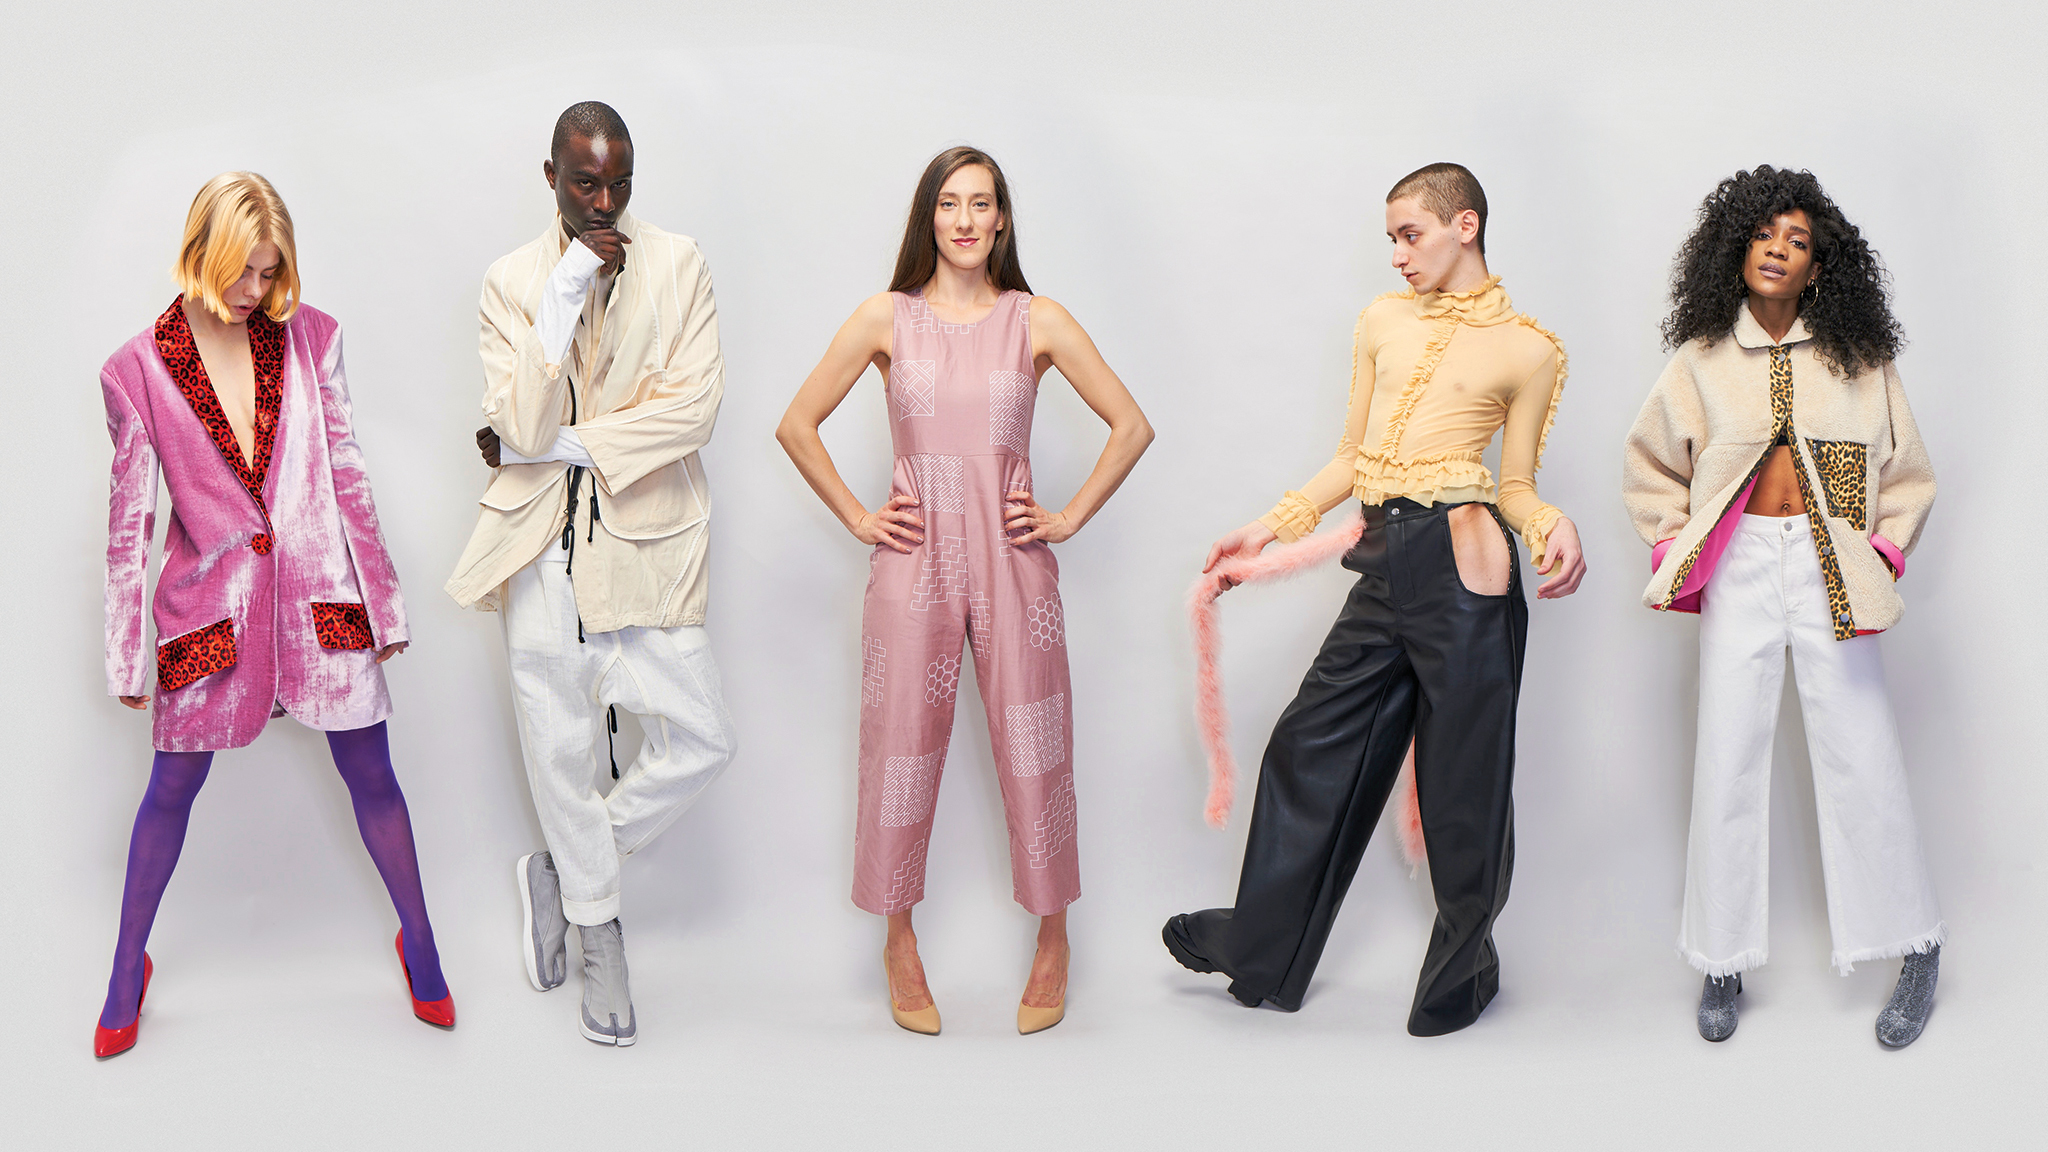 Meet the six designers who are making waves in the New York fashion scene